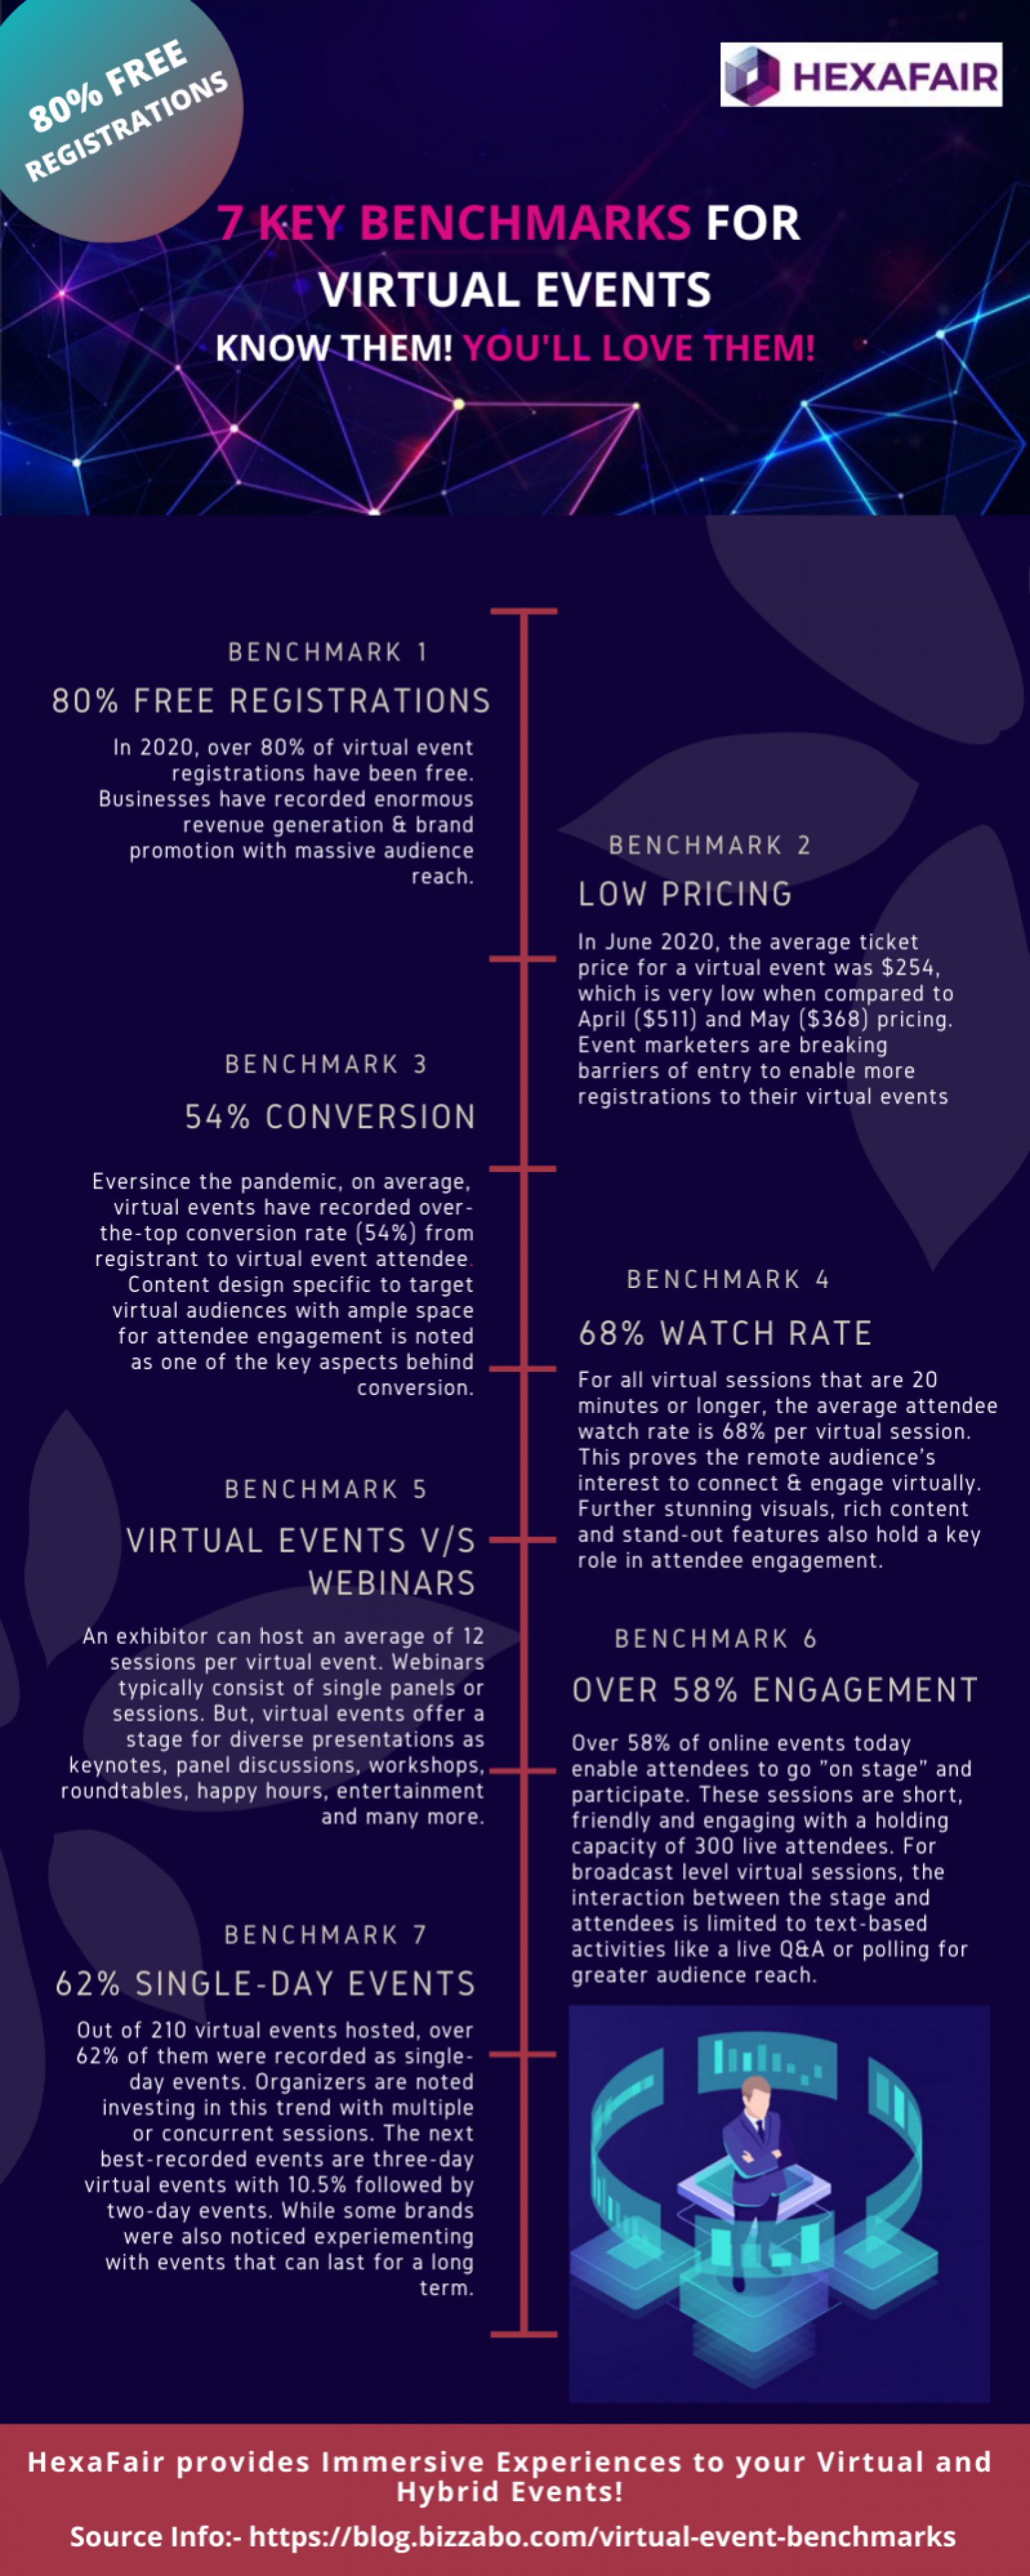 7 key benchmark for virtual events know them! You will love them! Infographic